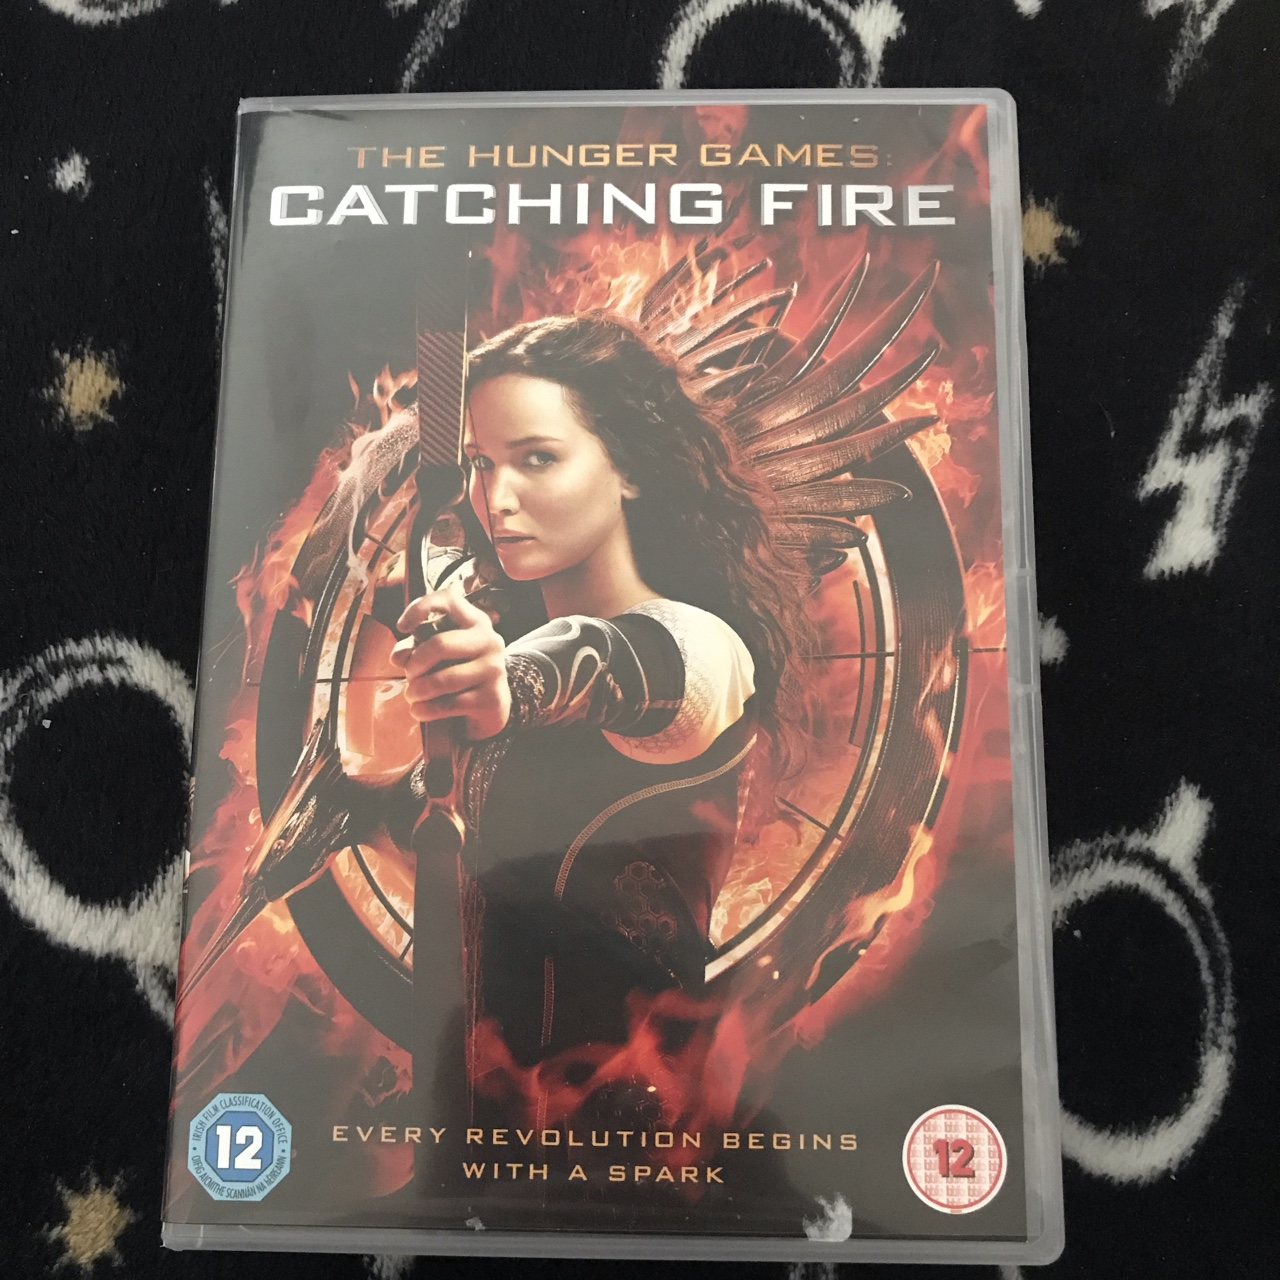 The Hunger Games Catching Fire 2013 Starring Depop